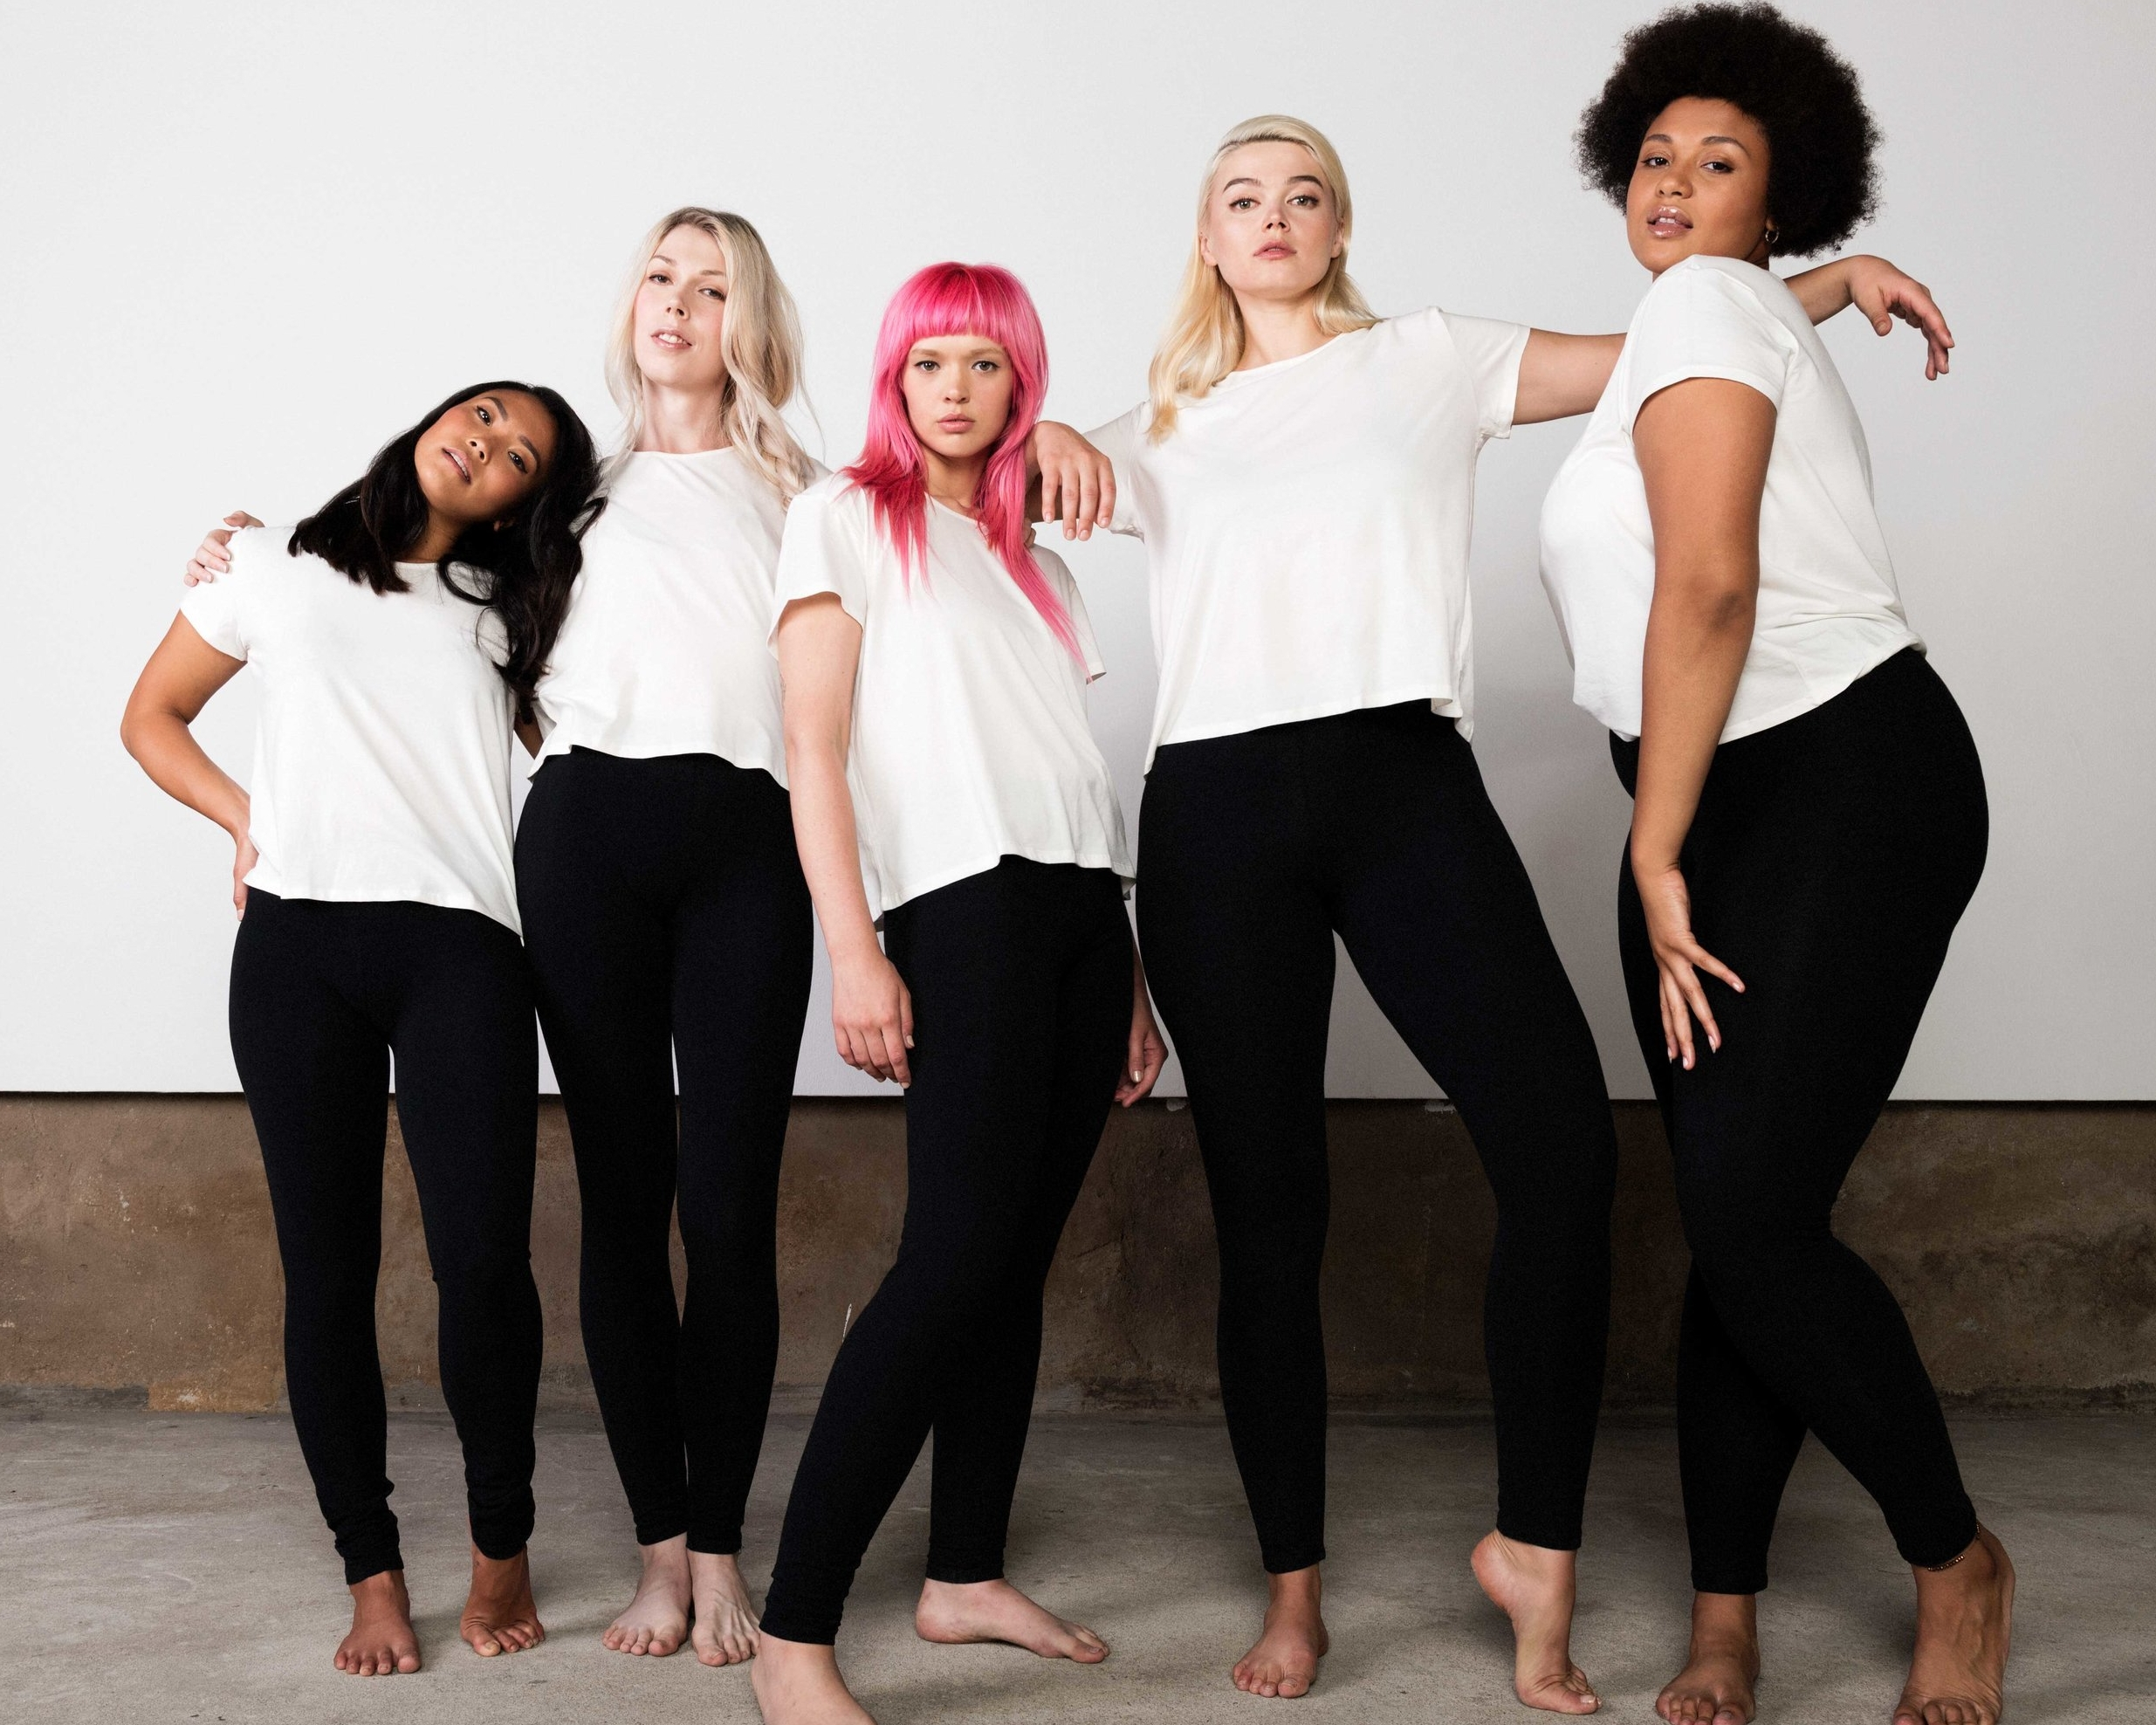 LEGGINGS | $60 - Leggings... made sustainably! These organic cotton leggings have been a favorite for seasons. They are an easy and simple swap for a clean, green, and ethical wardrobe! Made from the softest organic cotton + spandex blend with a 1.5